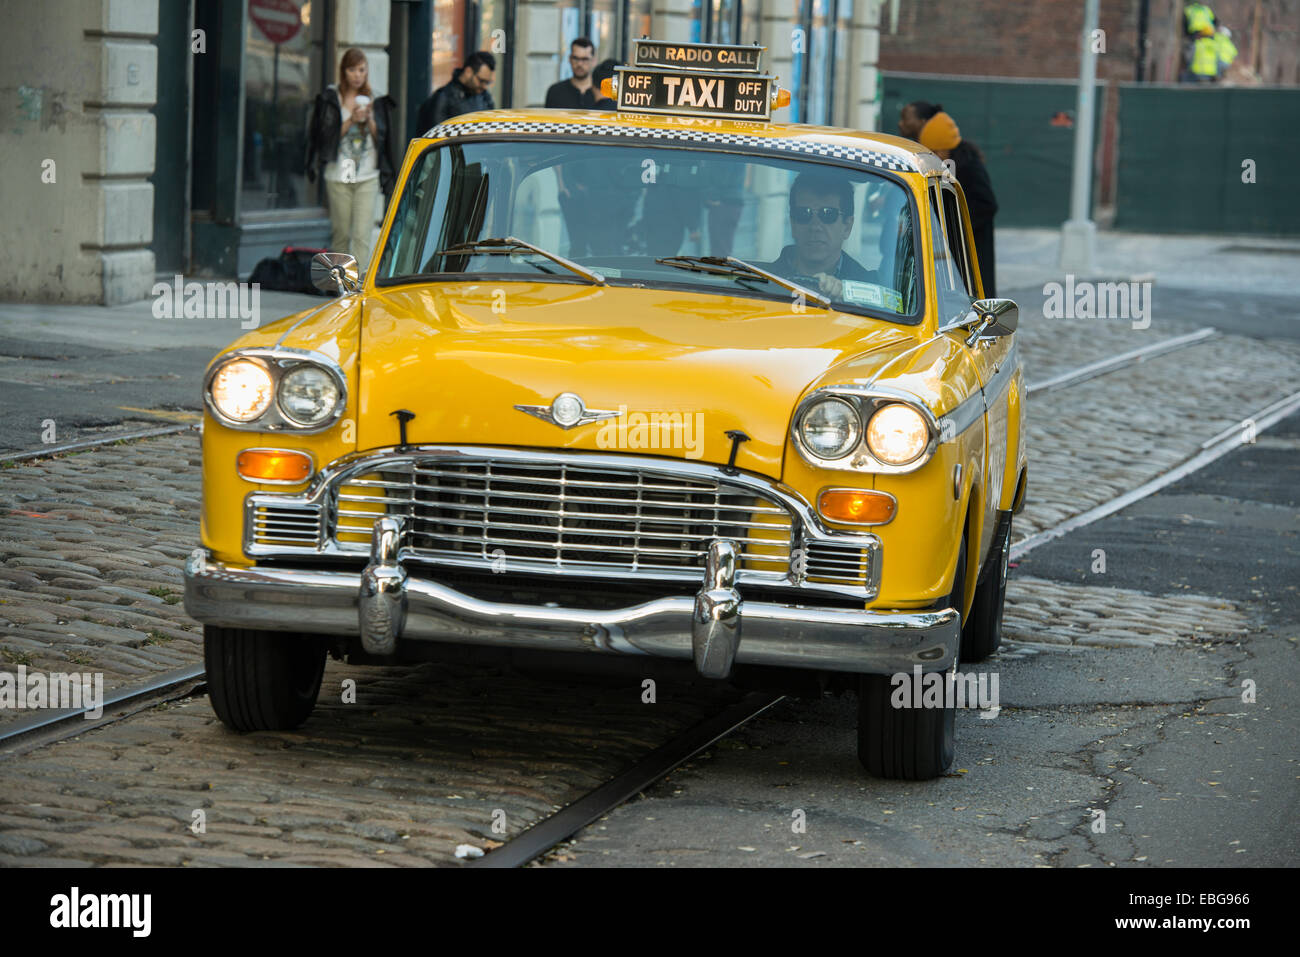 60's Checker Cab taxi, Brooklyn Heights, New York, United States - Stock Image